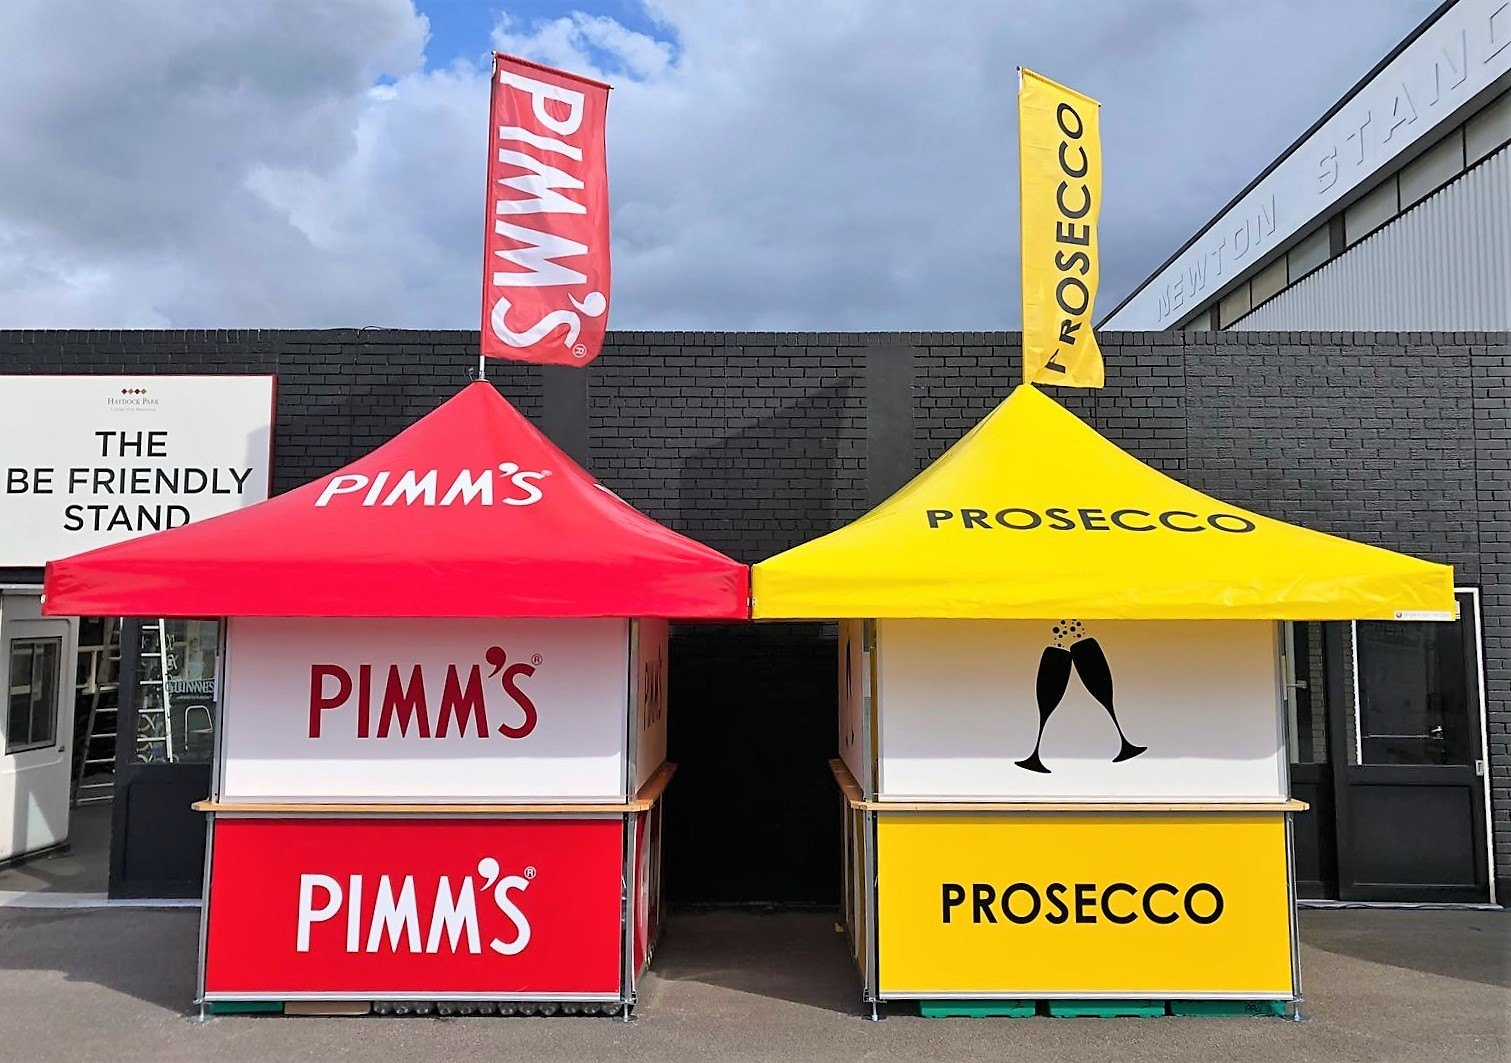 <p>Event, Mobile &amp; Stadia Bars &#8211; Tents &amp; Marquees &#8211; Square Pavilion</p> <p>&nbsp;</p> <p>Outdoor Event Bars &#8211; Pimm&#8217;s &amp; Prosecco.</p> <p>&nbsp;</p> <p>Ideally suited for serving premium drinks brands as outdoor event bars at sporting venues, high-end party events etc.</p> <p>&nbsp;</p> <p>Square Pavilions are small enough to work in small spaces, but big enough to make your brand look its best and stand out in the crowd.  Includes Accessories &#8211; night panels and roof flags</p>